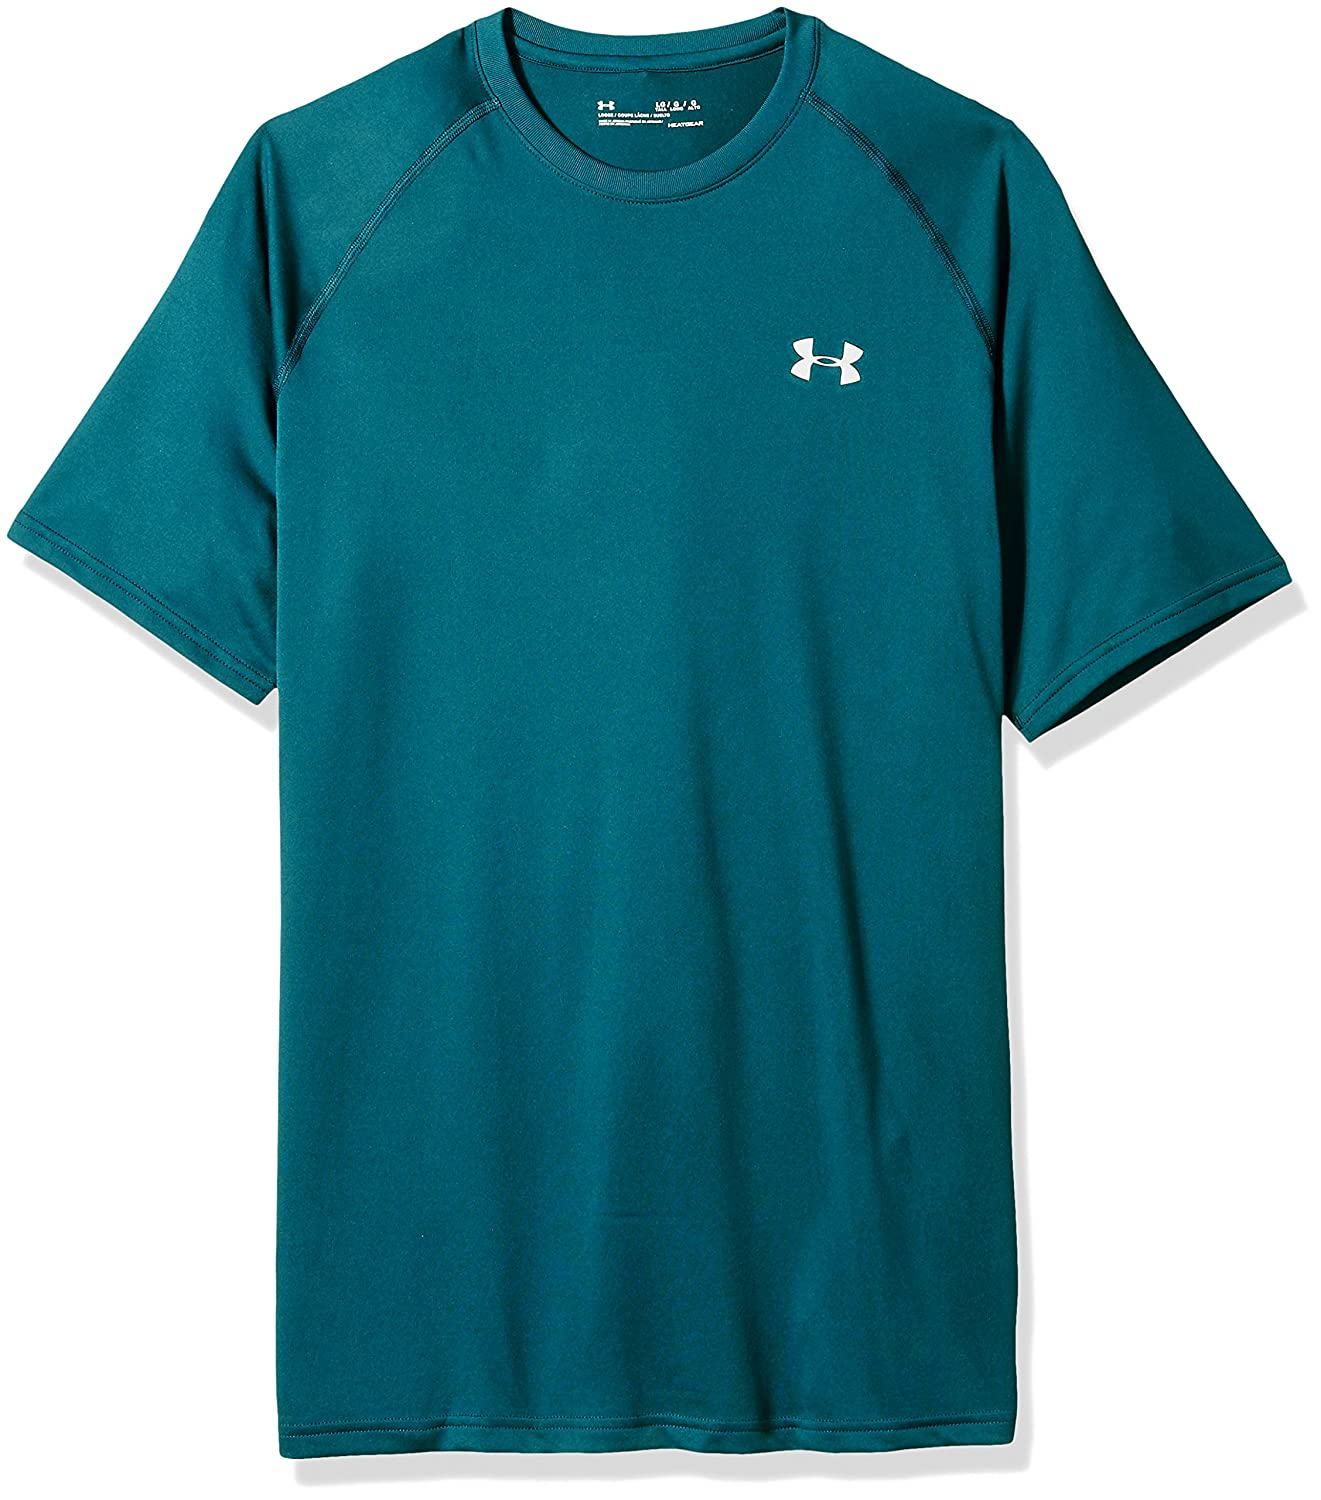 [アンダーアーマー] UA Tech SS Tee メンズ 1228539 B071Z35NXK Small|Tourmaline Teal/Tin Tourmaline Teal/Tin Small